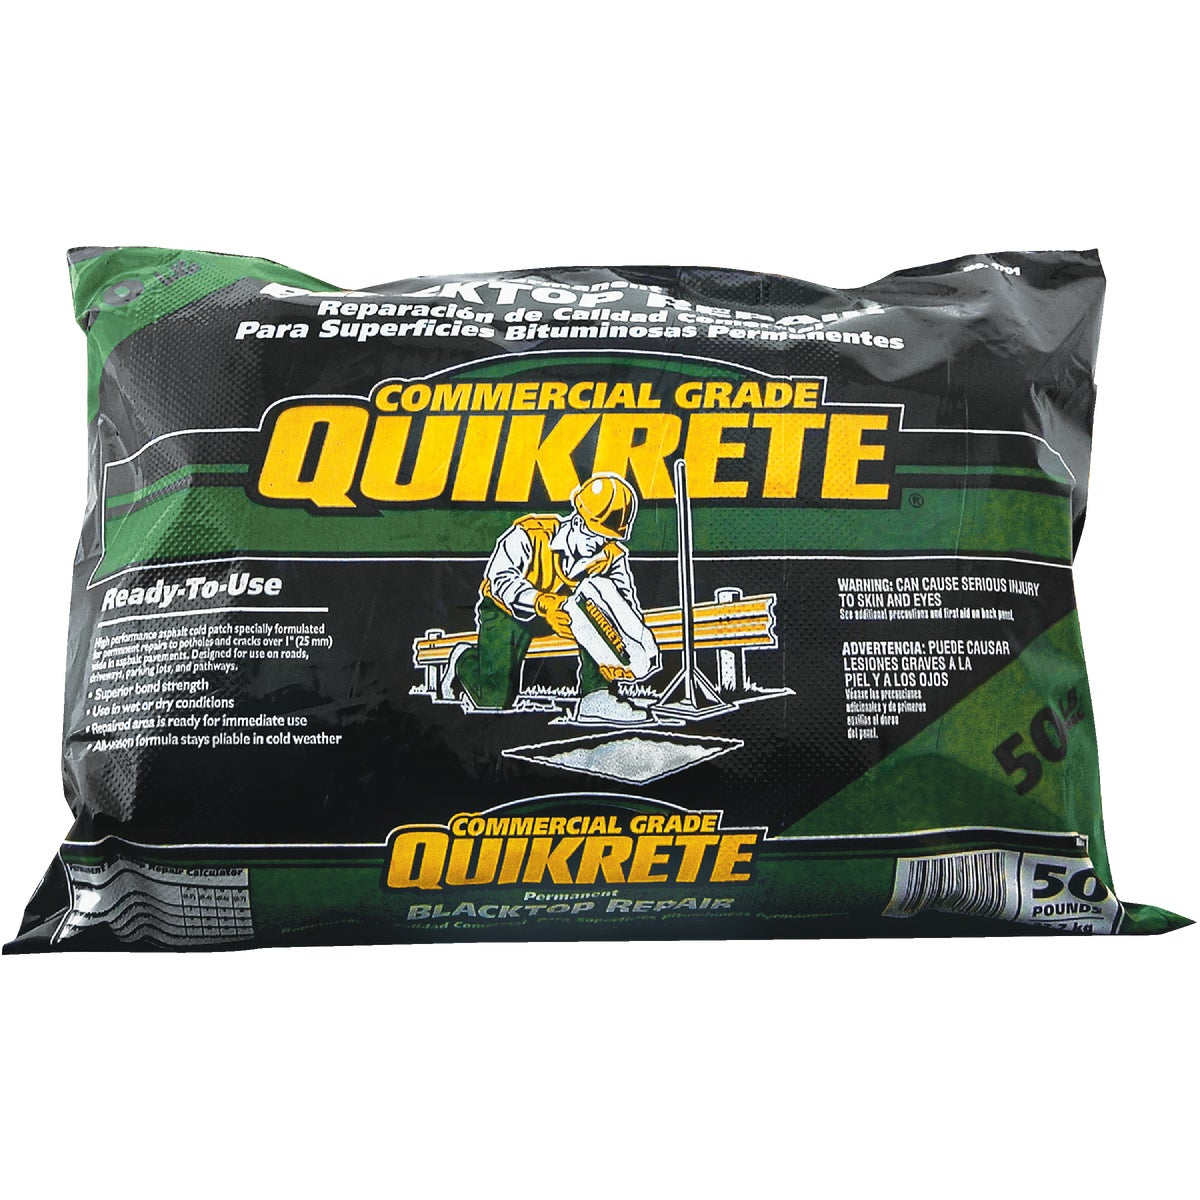 50LB BLACKTOP PATCH - 1701-52 by Quikrete Co